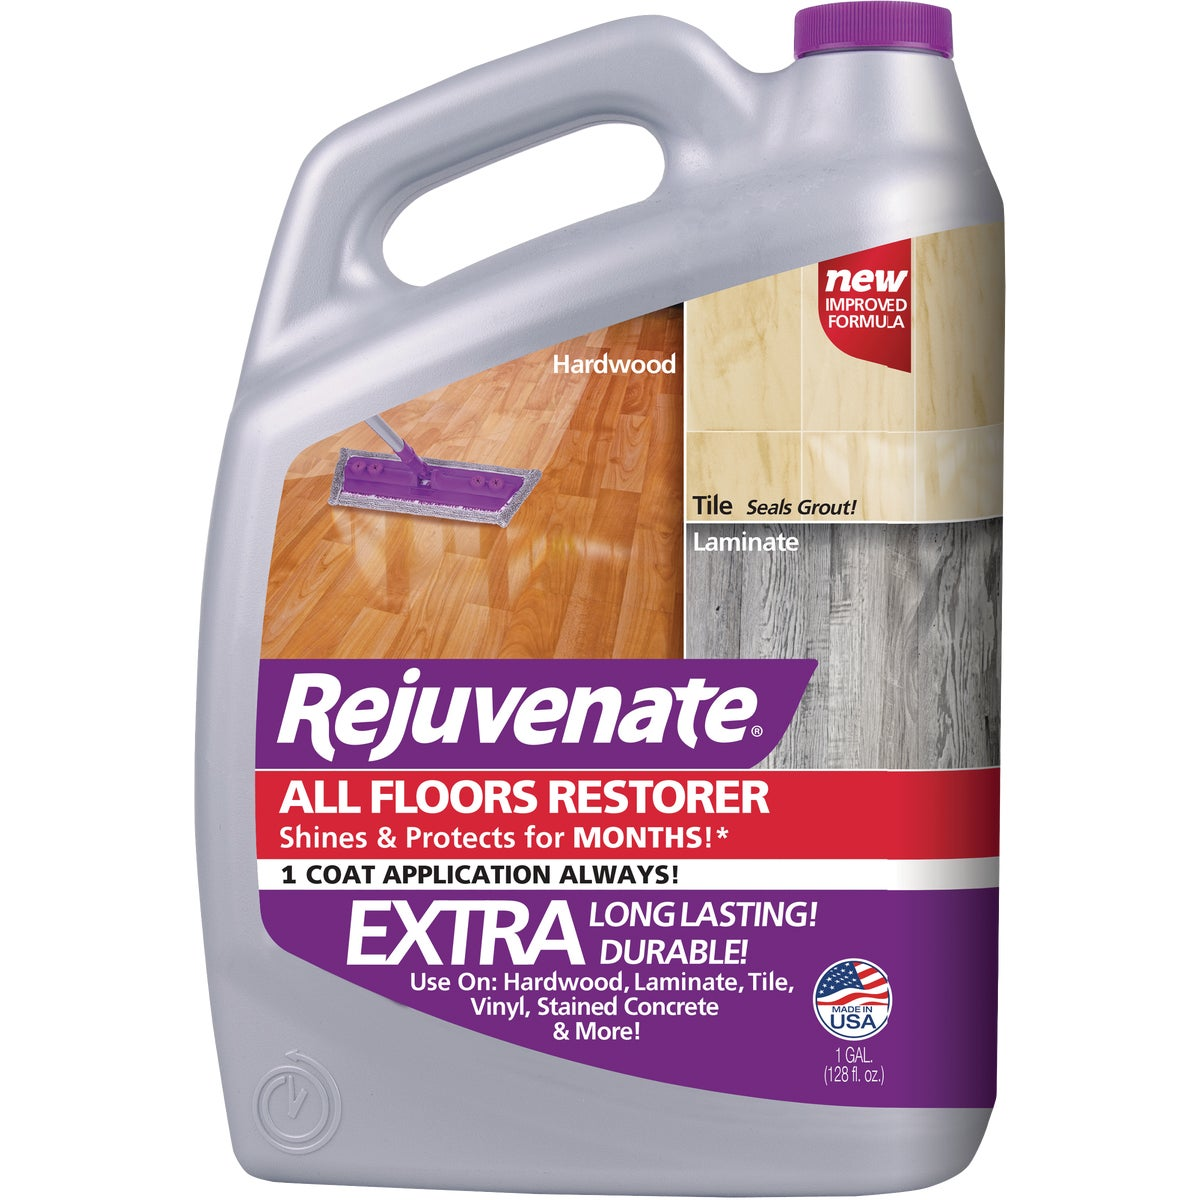 Rejuvenate Floor Finish Restorer